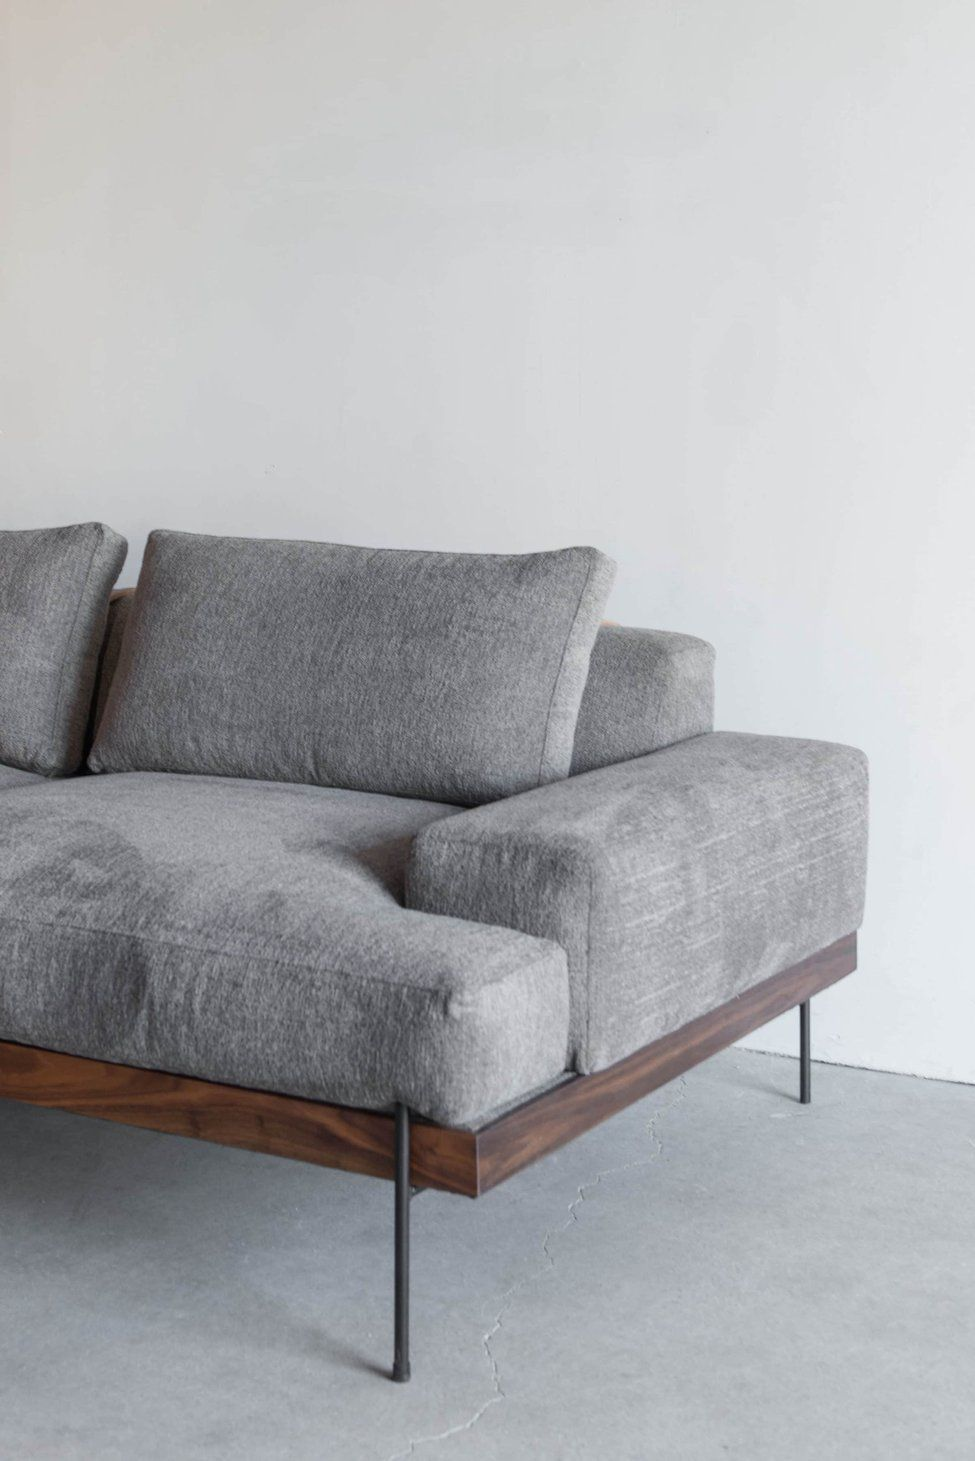 Rivera Sofa Couch Furniture Sofa Styling Diy Furniture Couch